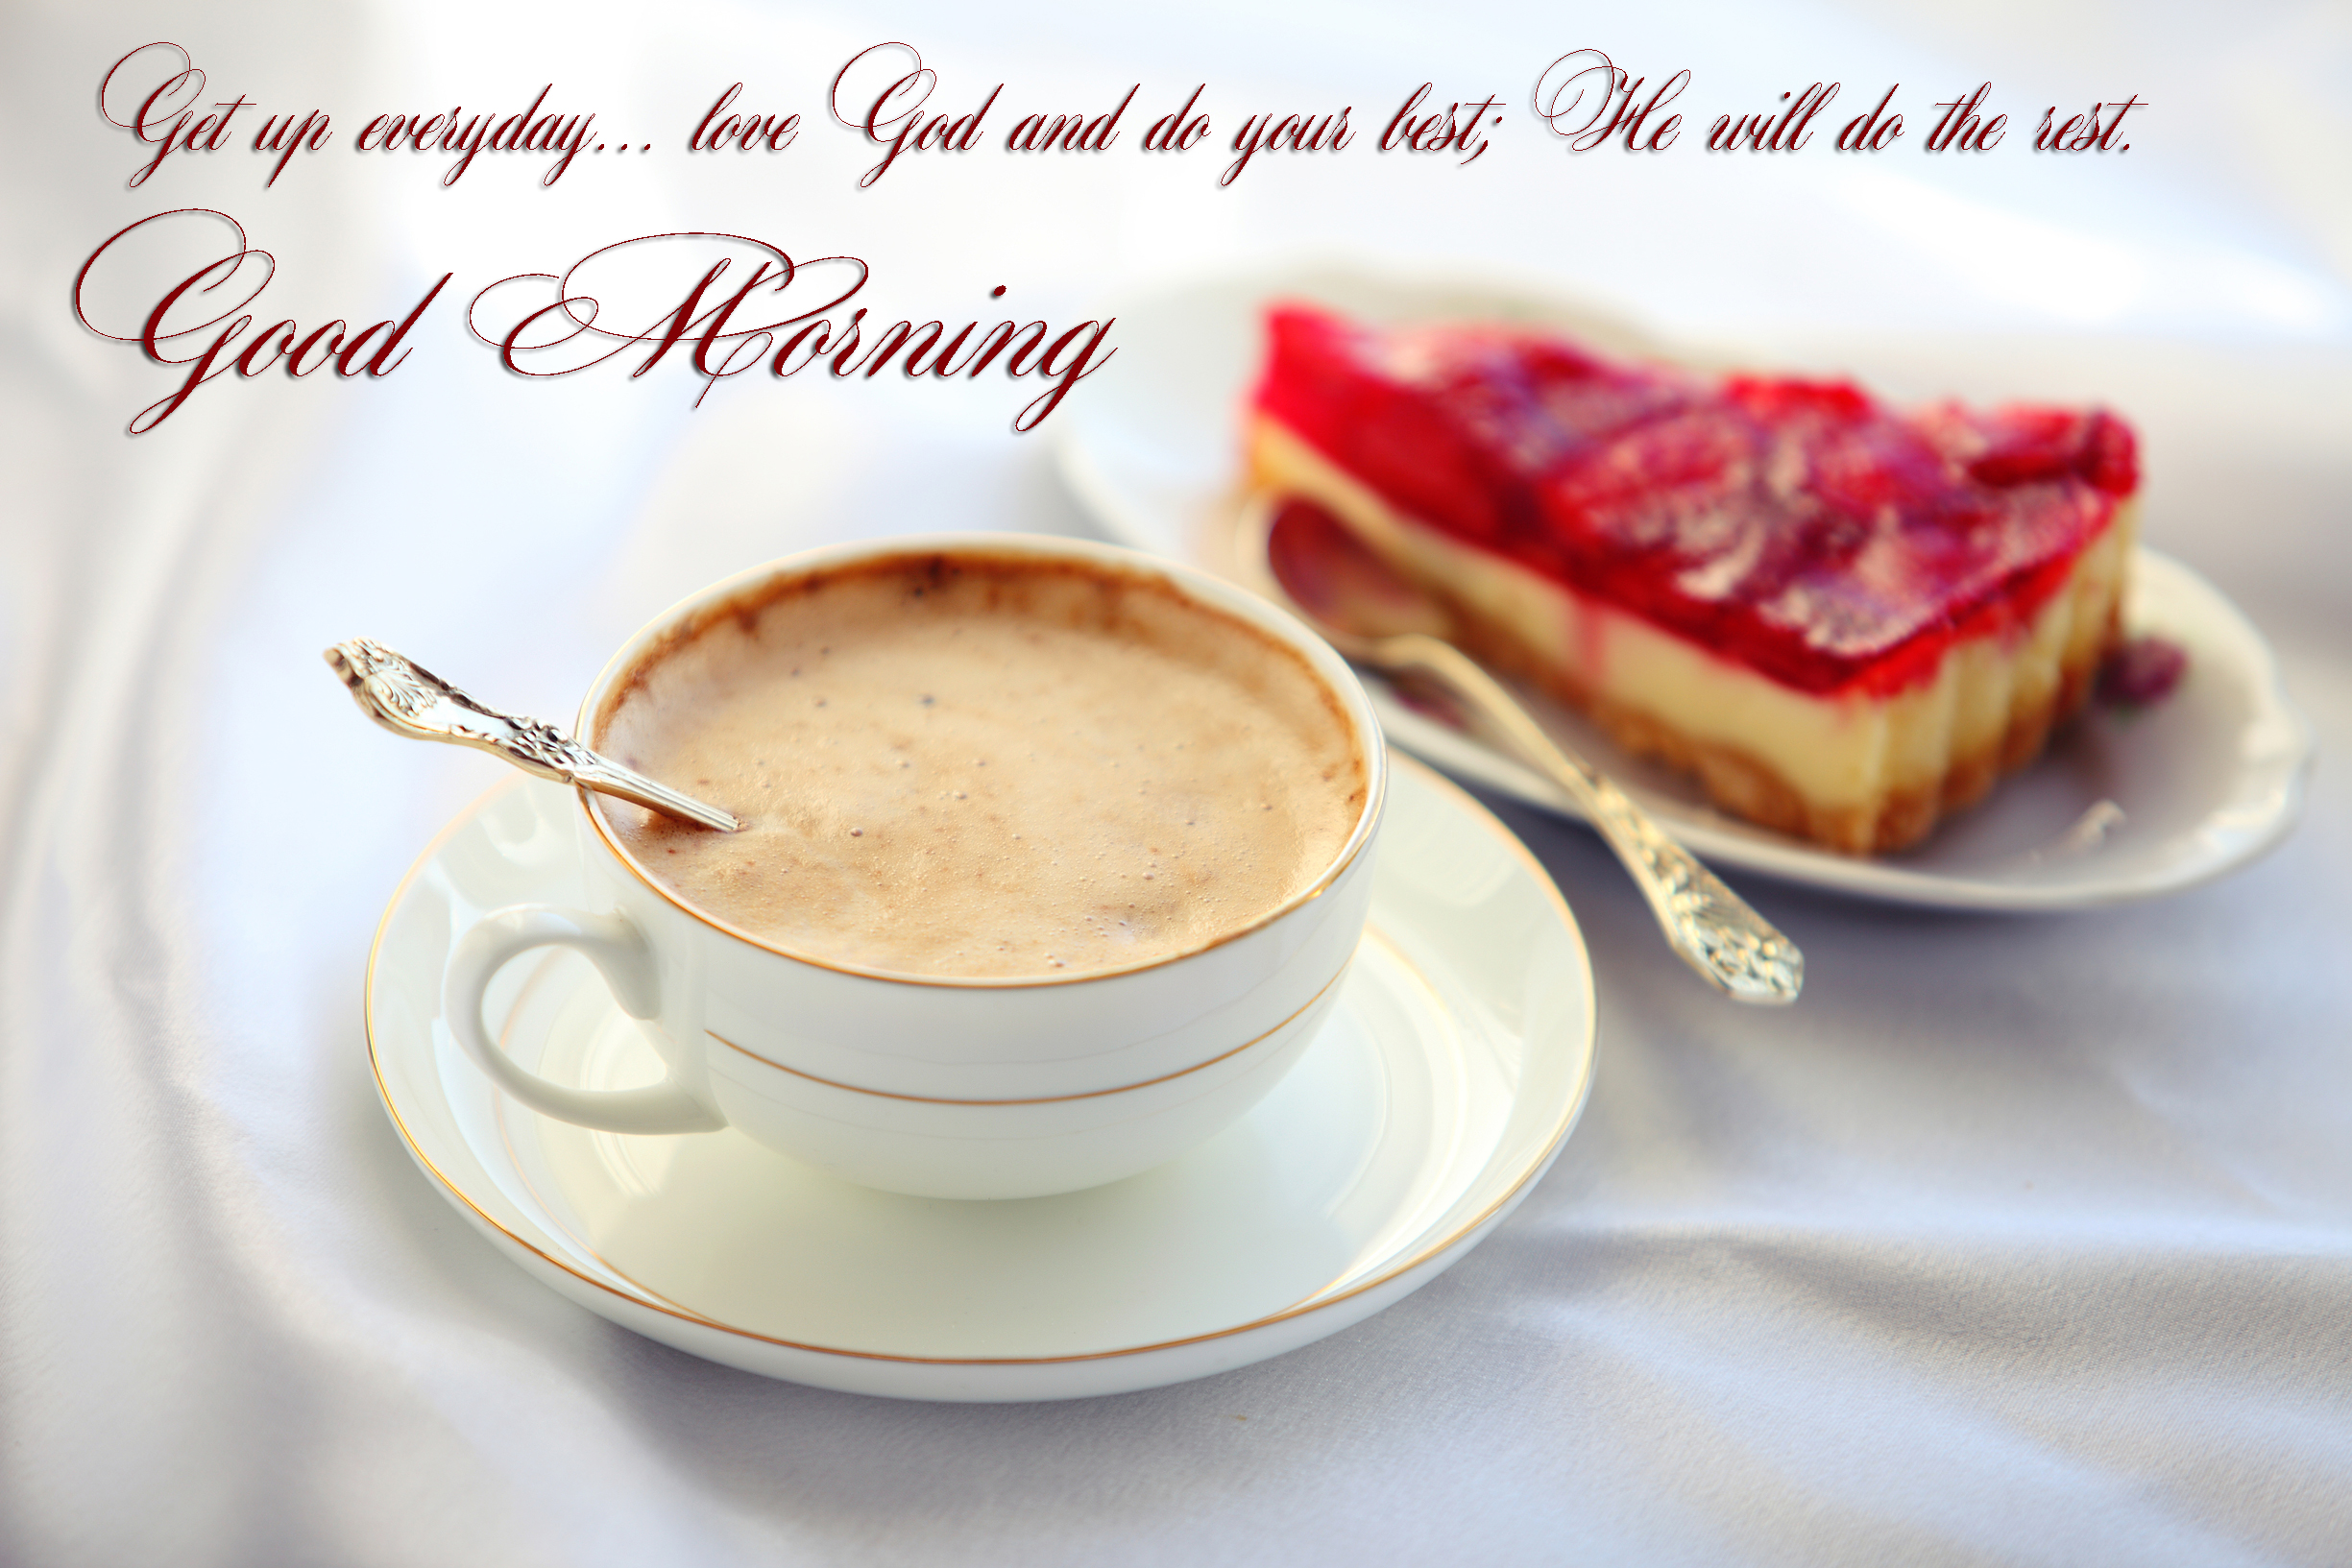 good morning message love god coffee cake